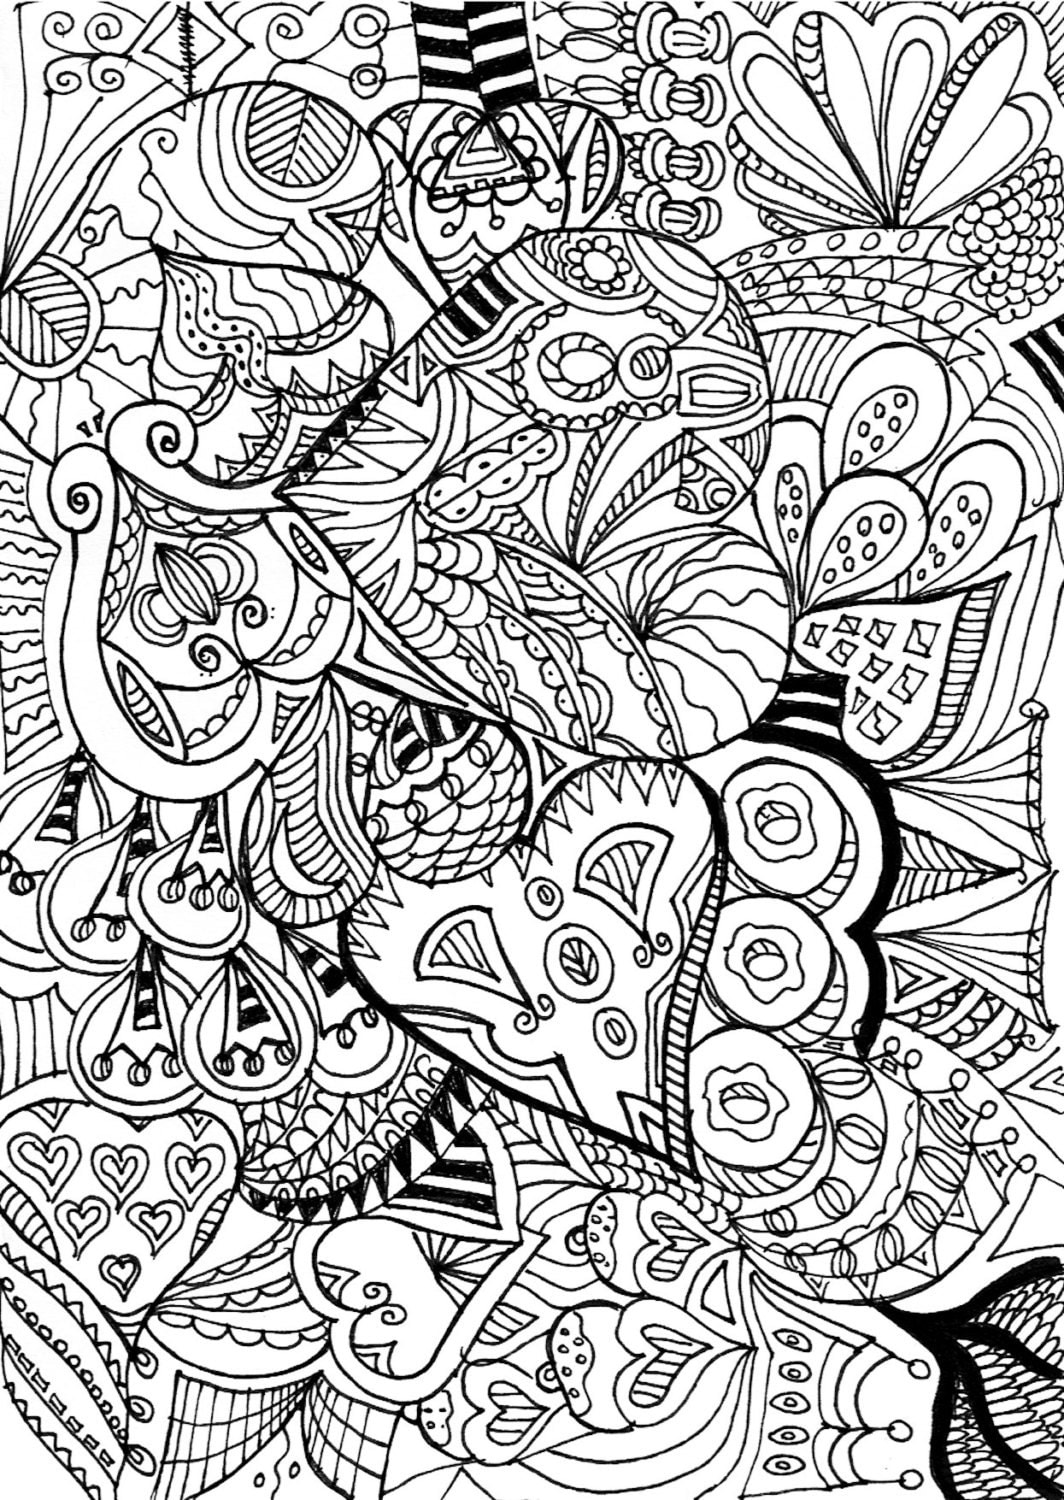 shelly beauchamp zen tangles coloring pages | Zentangle coloring page